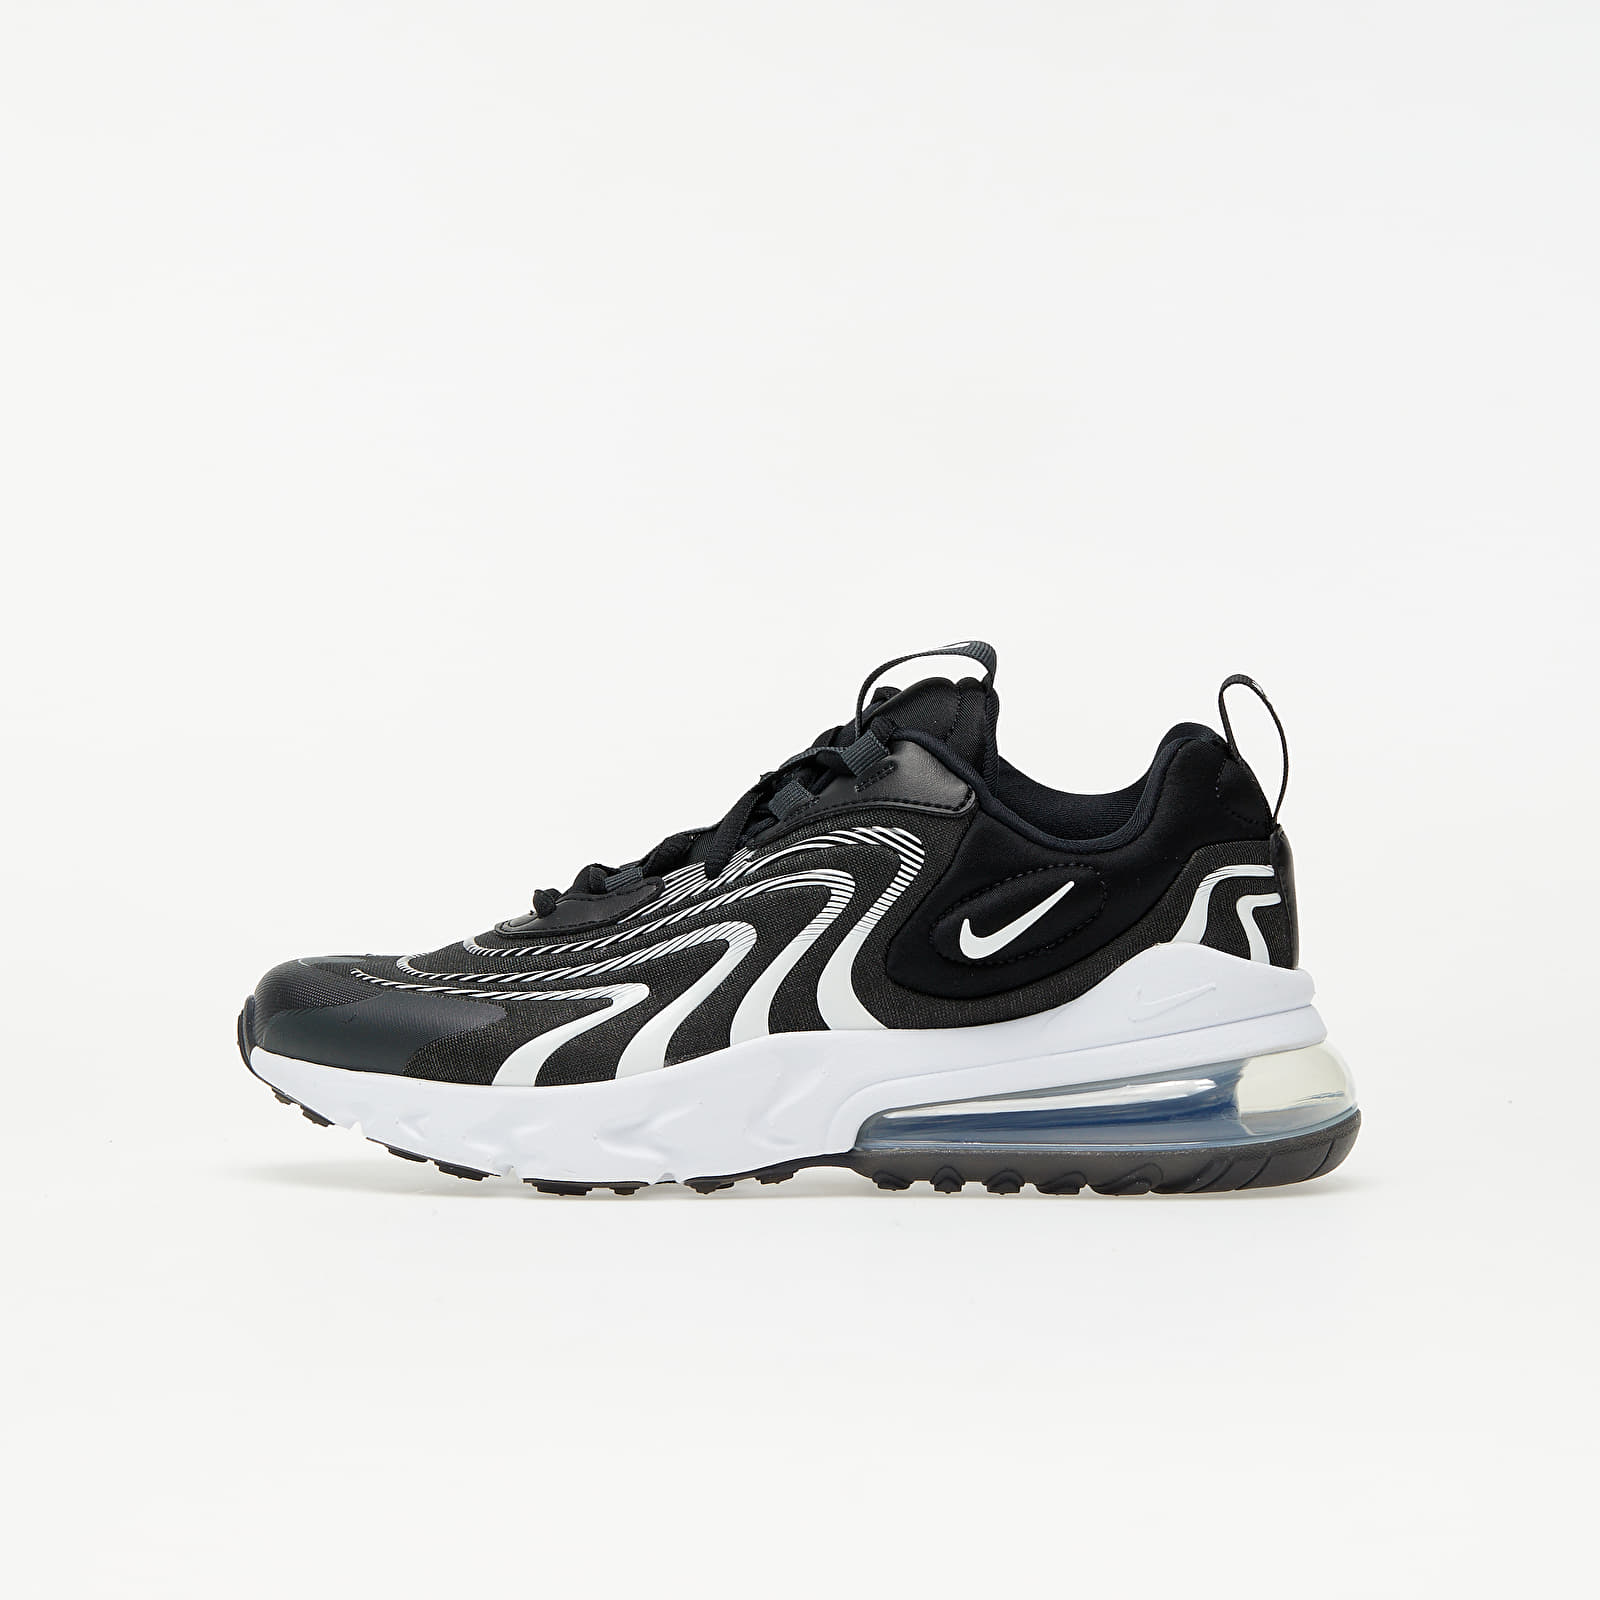 Nike Air Max 270 React ENG (GS) Black/ White-Dk Smoke Grey-Wolf Grey EUR 36.5